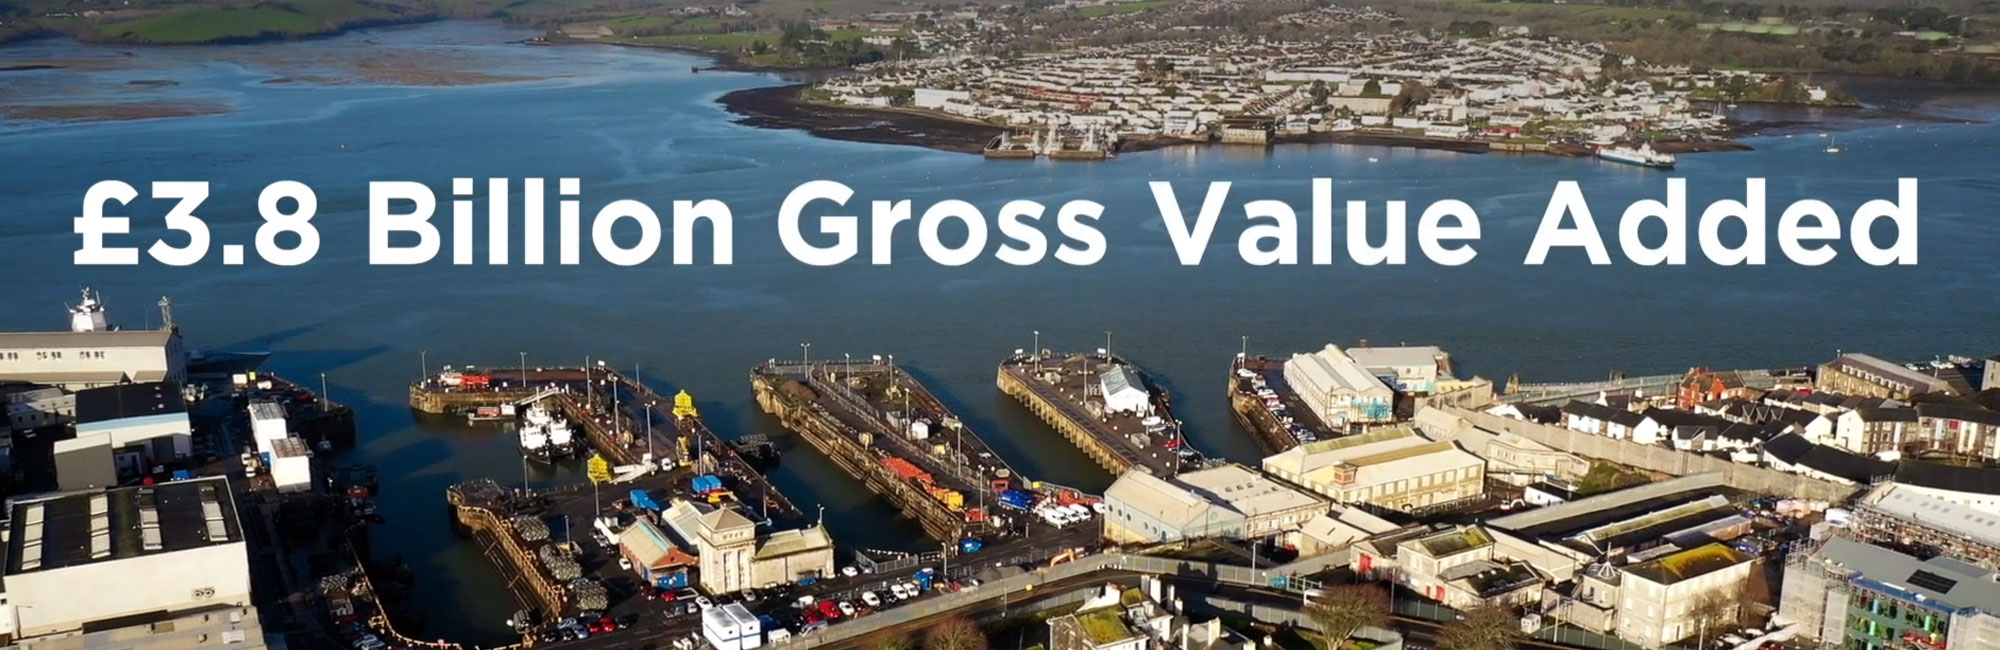 Screen shot of the video showing aerial view of devonport, Plymouth